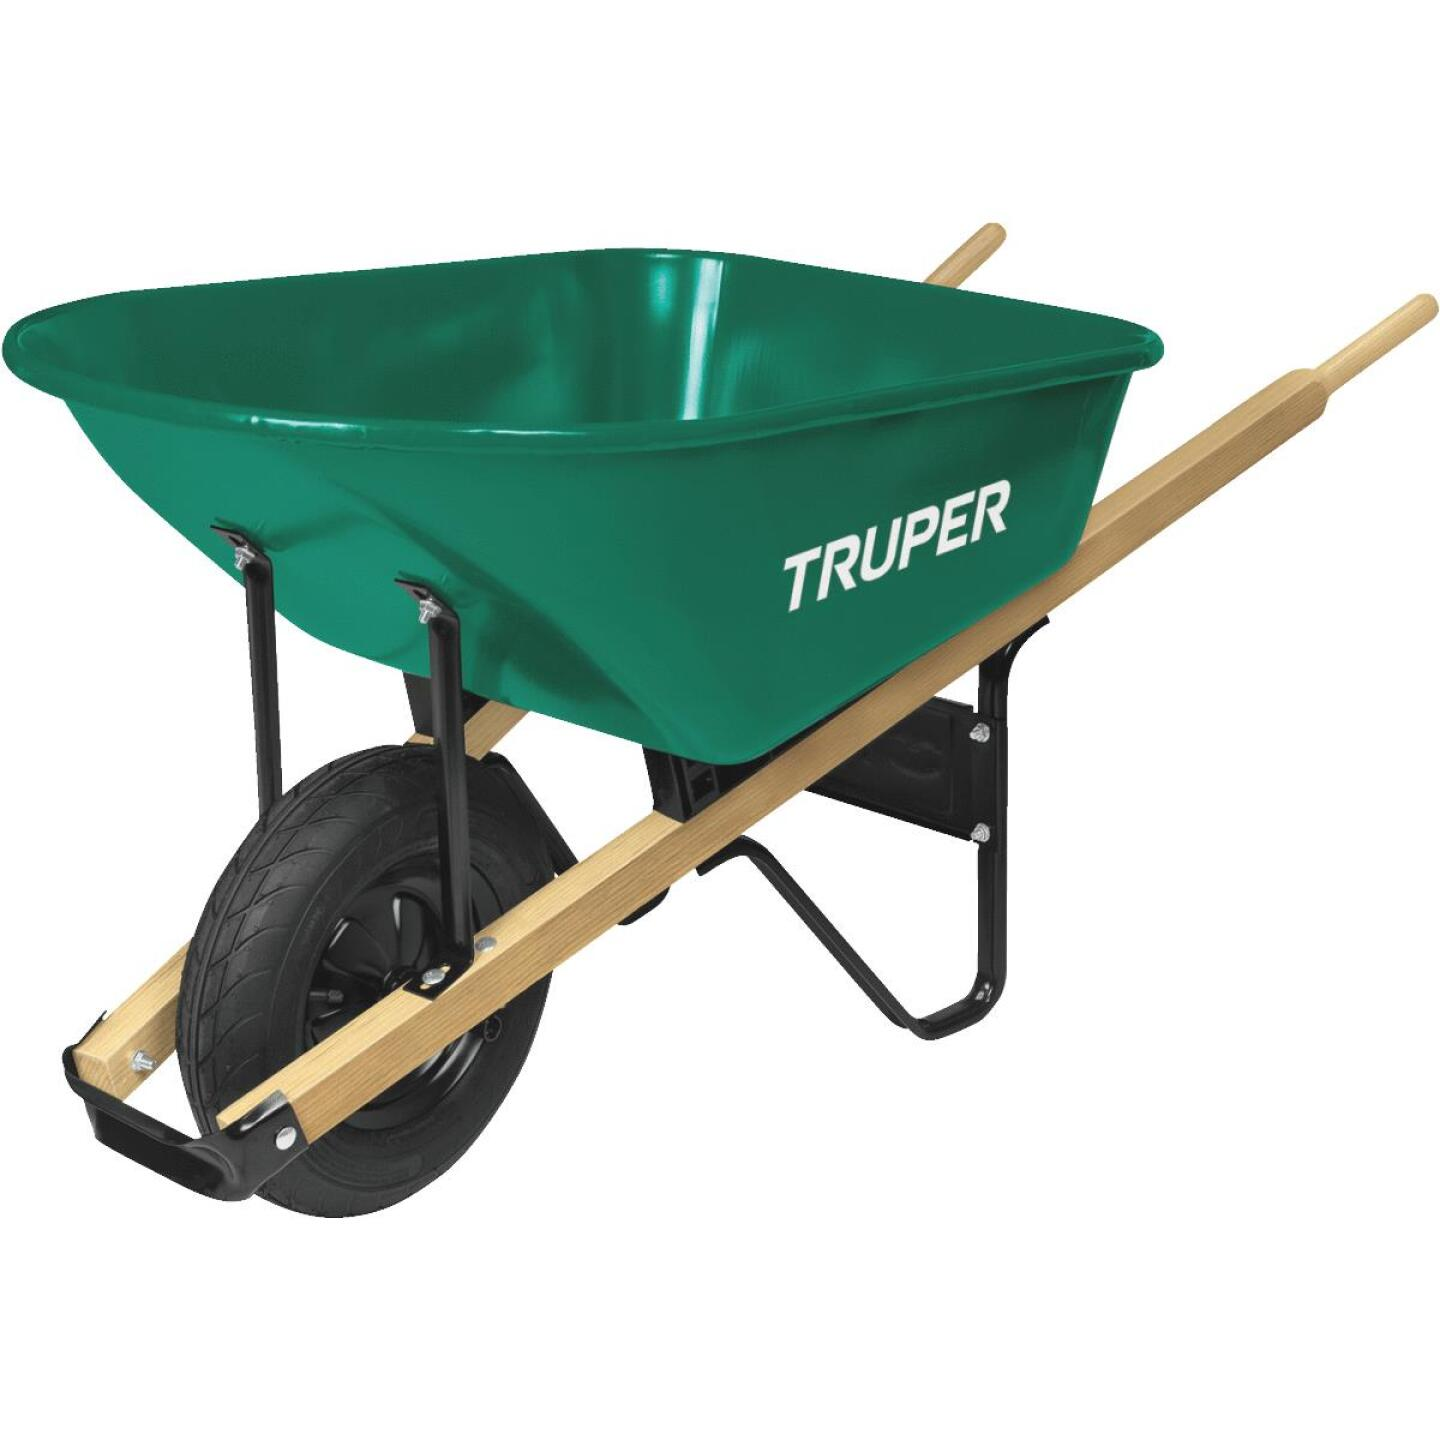 Truper 6 Cu. Ft. Steel Wheelbarrow Image 1